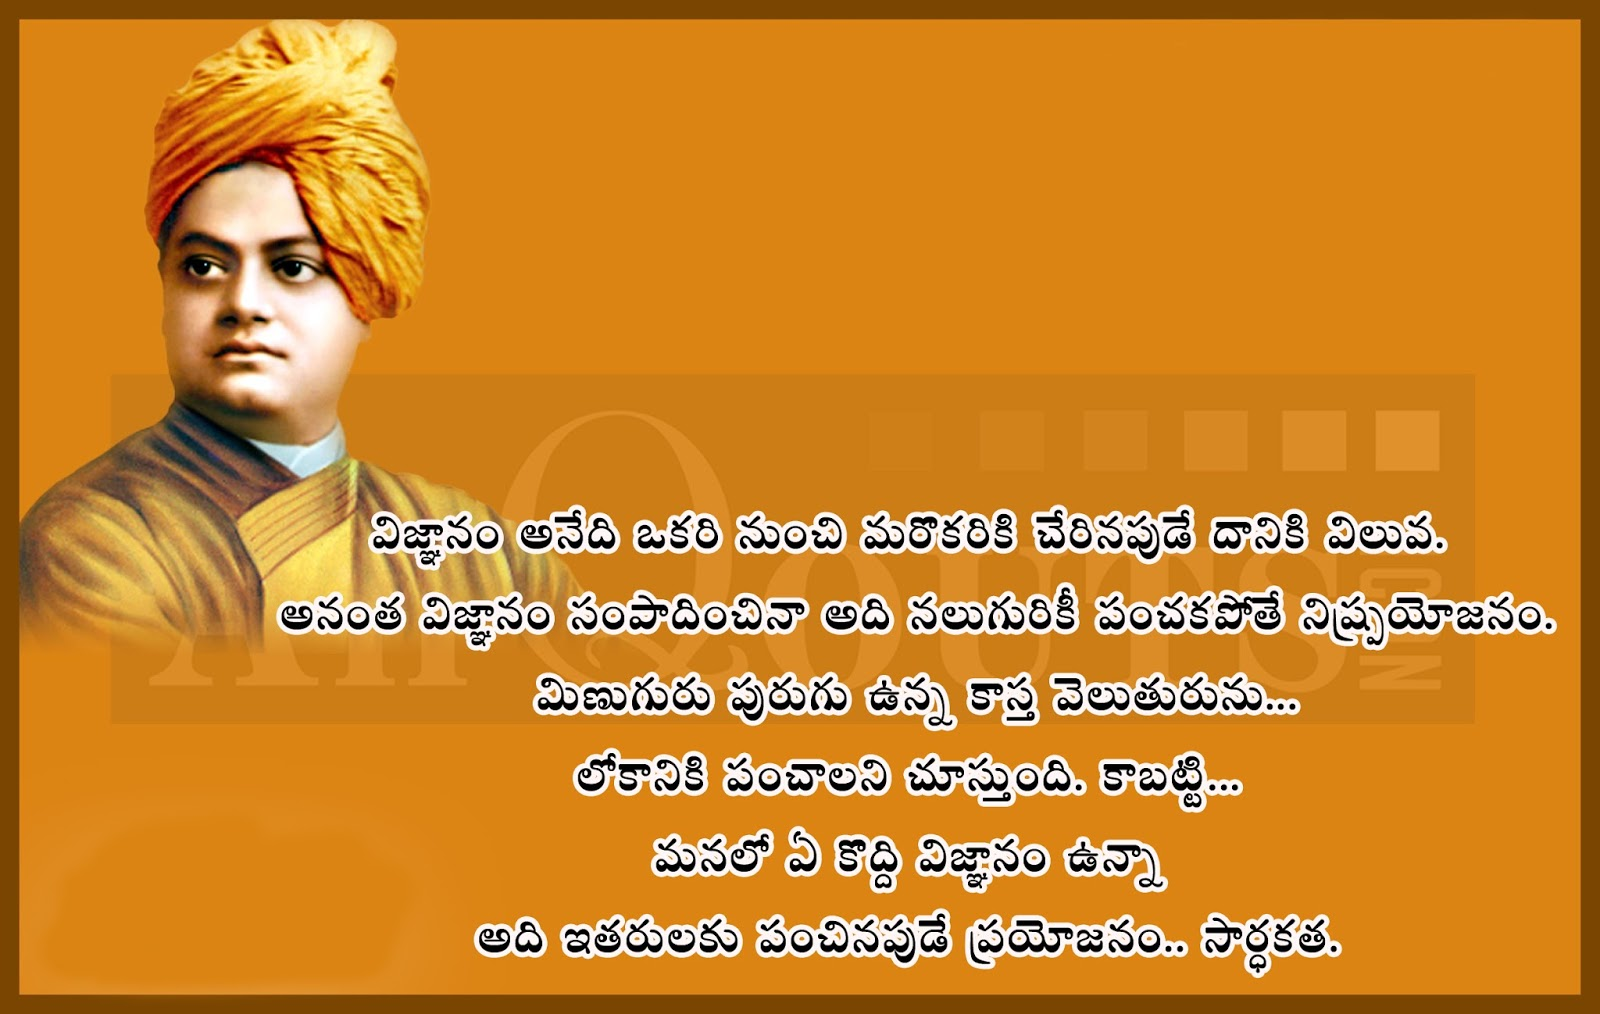 Knowledge is Power Quotes and Sayings in Telugu Wallpapers ...